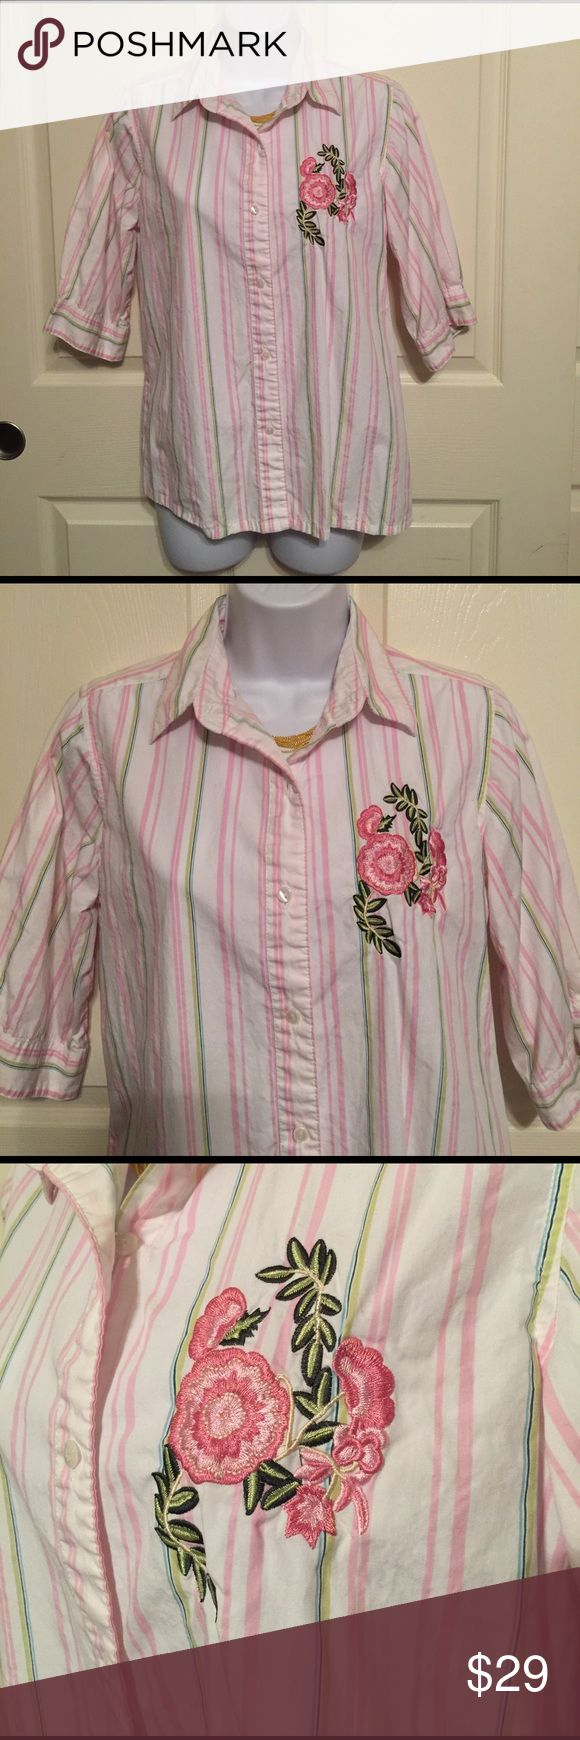 Pretty pink stripe polo button-down shirt flower S Pre-loved pretty pink stripe button-down polo shirt size S hundred percent cotton with a cute embroidered flower design. Woman's ladies.  Check out my closet, we have a variety of Victoria Secret, Bath and Body Works, handbags 👜 purse 👛 Aerosoles, shoes 👠fashion jewelry, women's clothing, Beauty products, home 🏡 decors & more...  Ships via USPS. Don't forget to bundle, you save big! Always a FREE GIFT 🎁 with every purchase!!! Thank you…